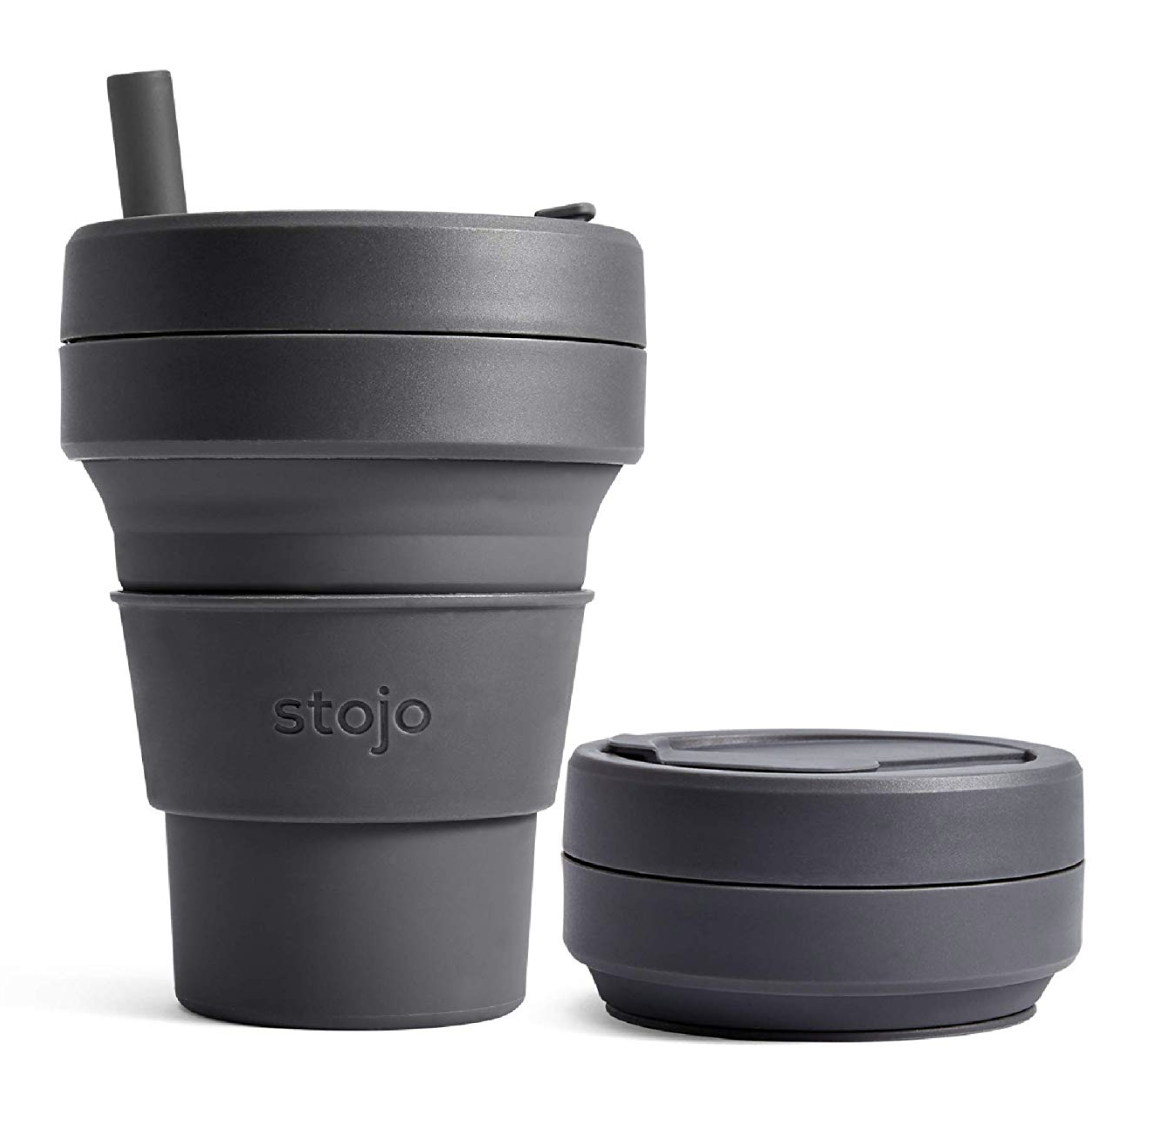 Stojo Collapsible and Reusable To-Go Coffee Cup